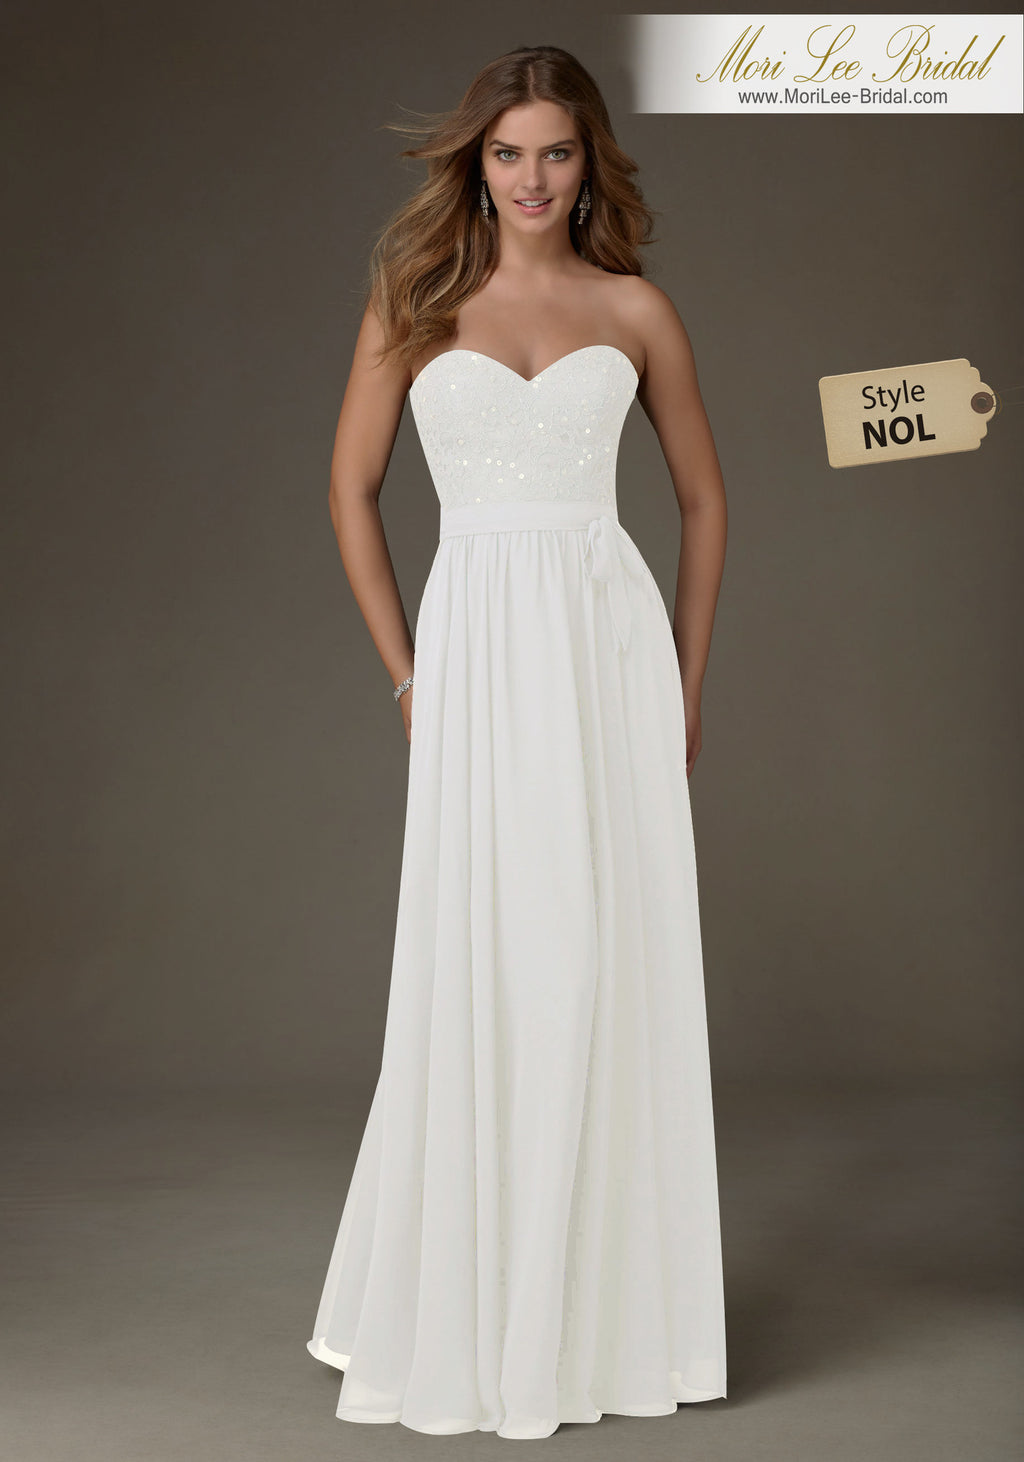 NOL* - Mori Lee Bridal